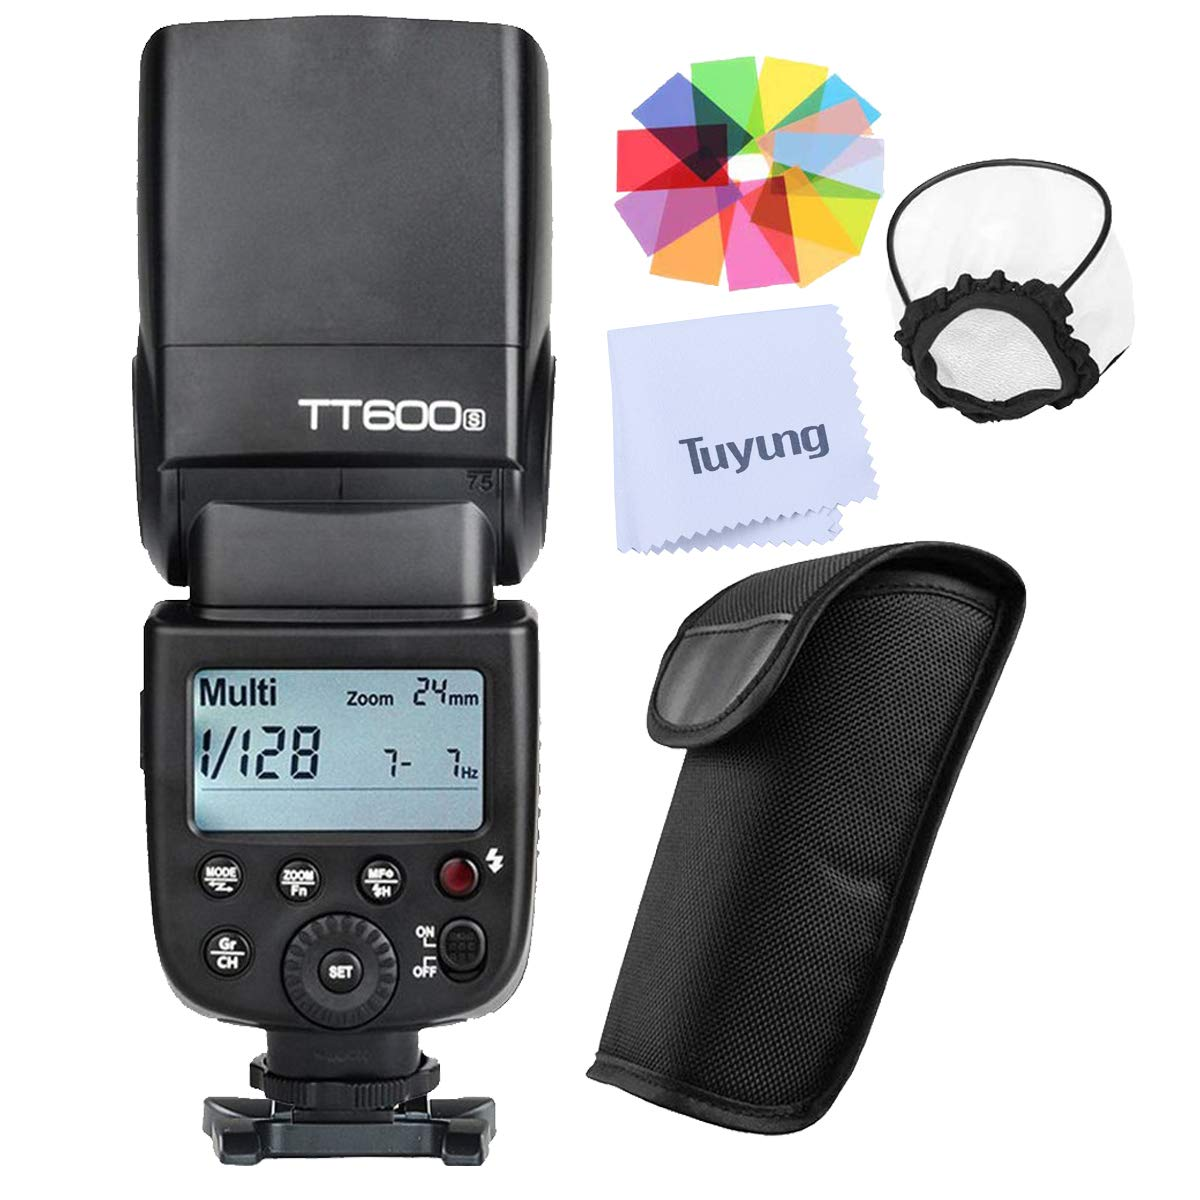 Godox TT600S GN60 2.4G Wireless X System Speedlite Flash for Sony Camera,0.1-2.6s Recycle time,5600k±200k Color Temperature,32 Channel,230 Full Power Flashes,Compatible for AD360II TT685 X1T